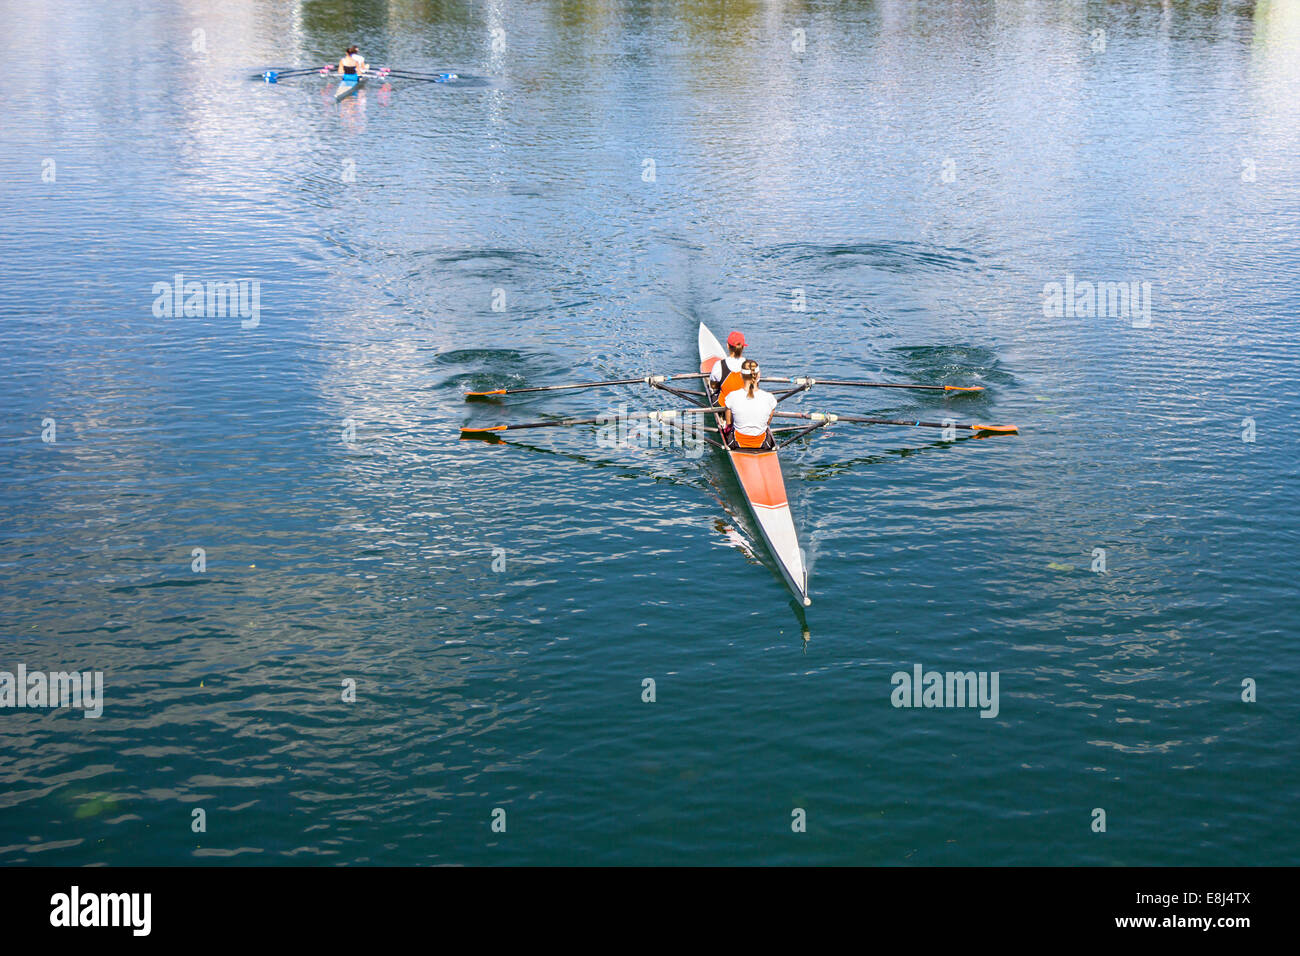 Two Women Rower in a boat, rowing on the tranquil lake Stock Photo